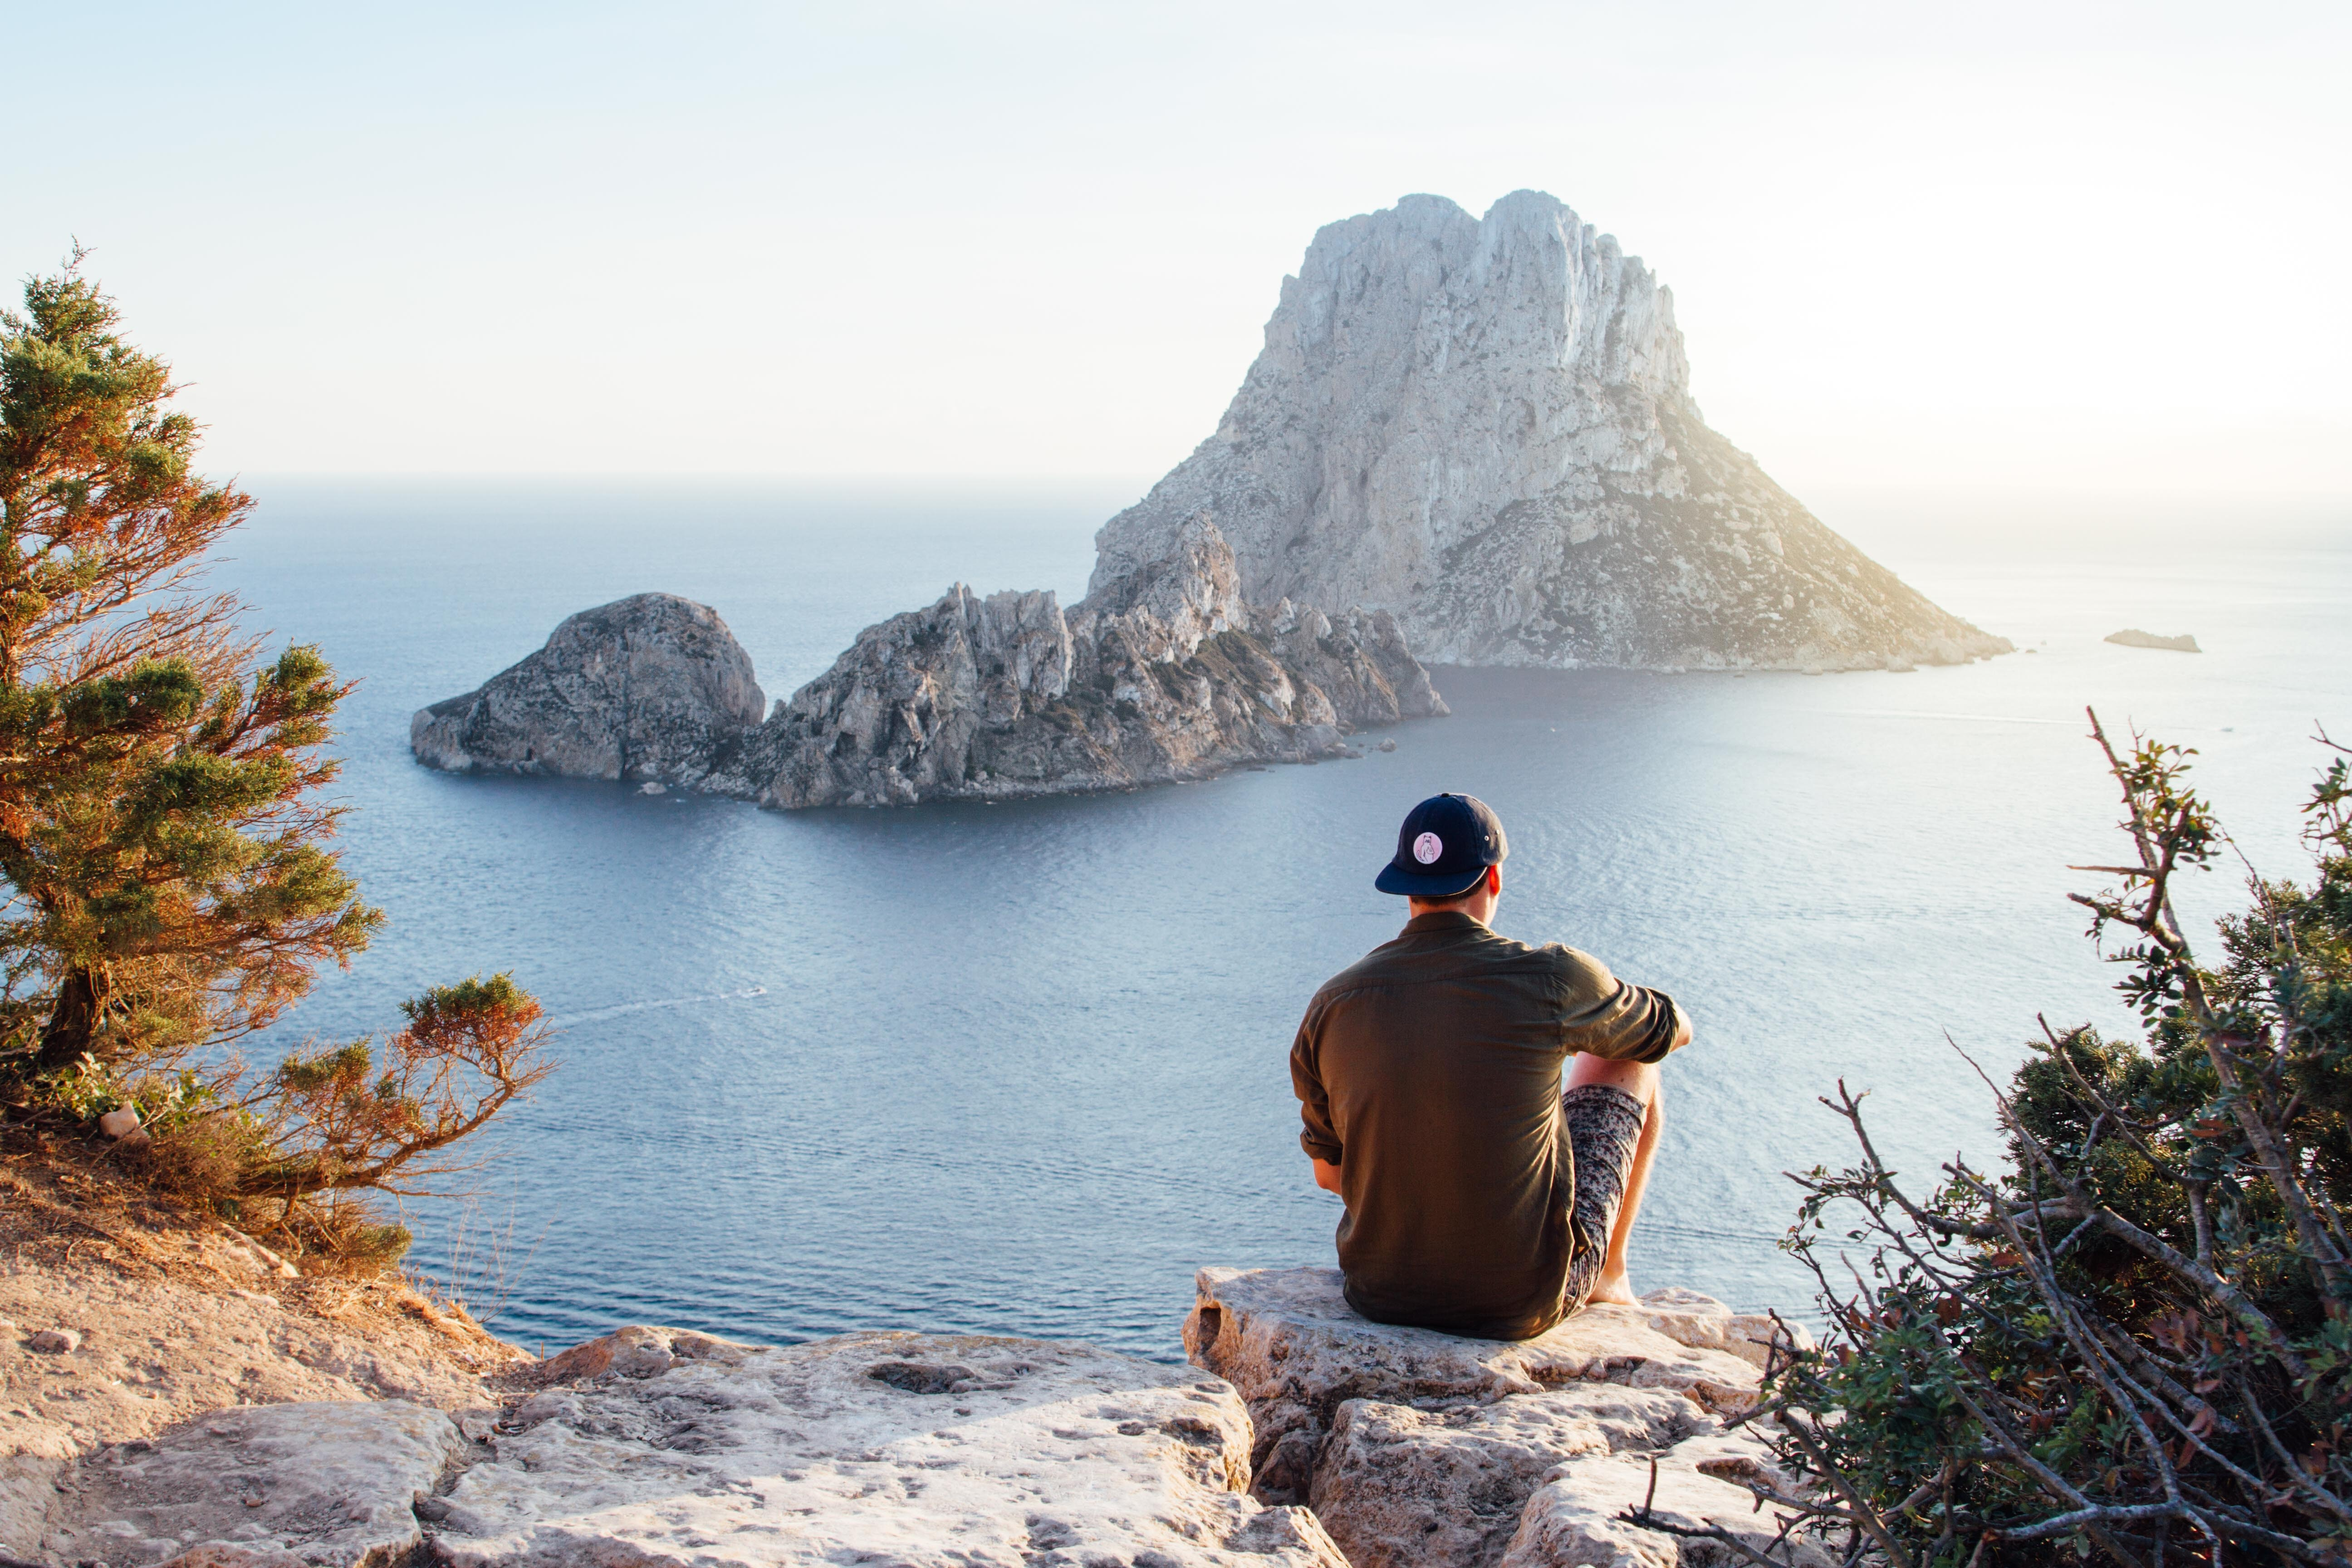 Rear View of Man Sitting on Rock by Sea, Adventure, Relaxation, View, Vacation, HQ Photo